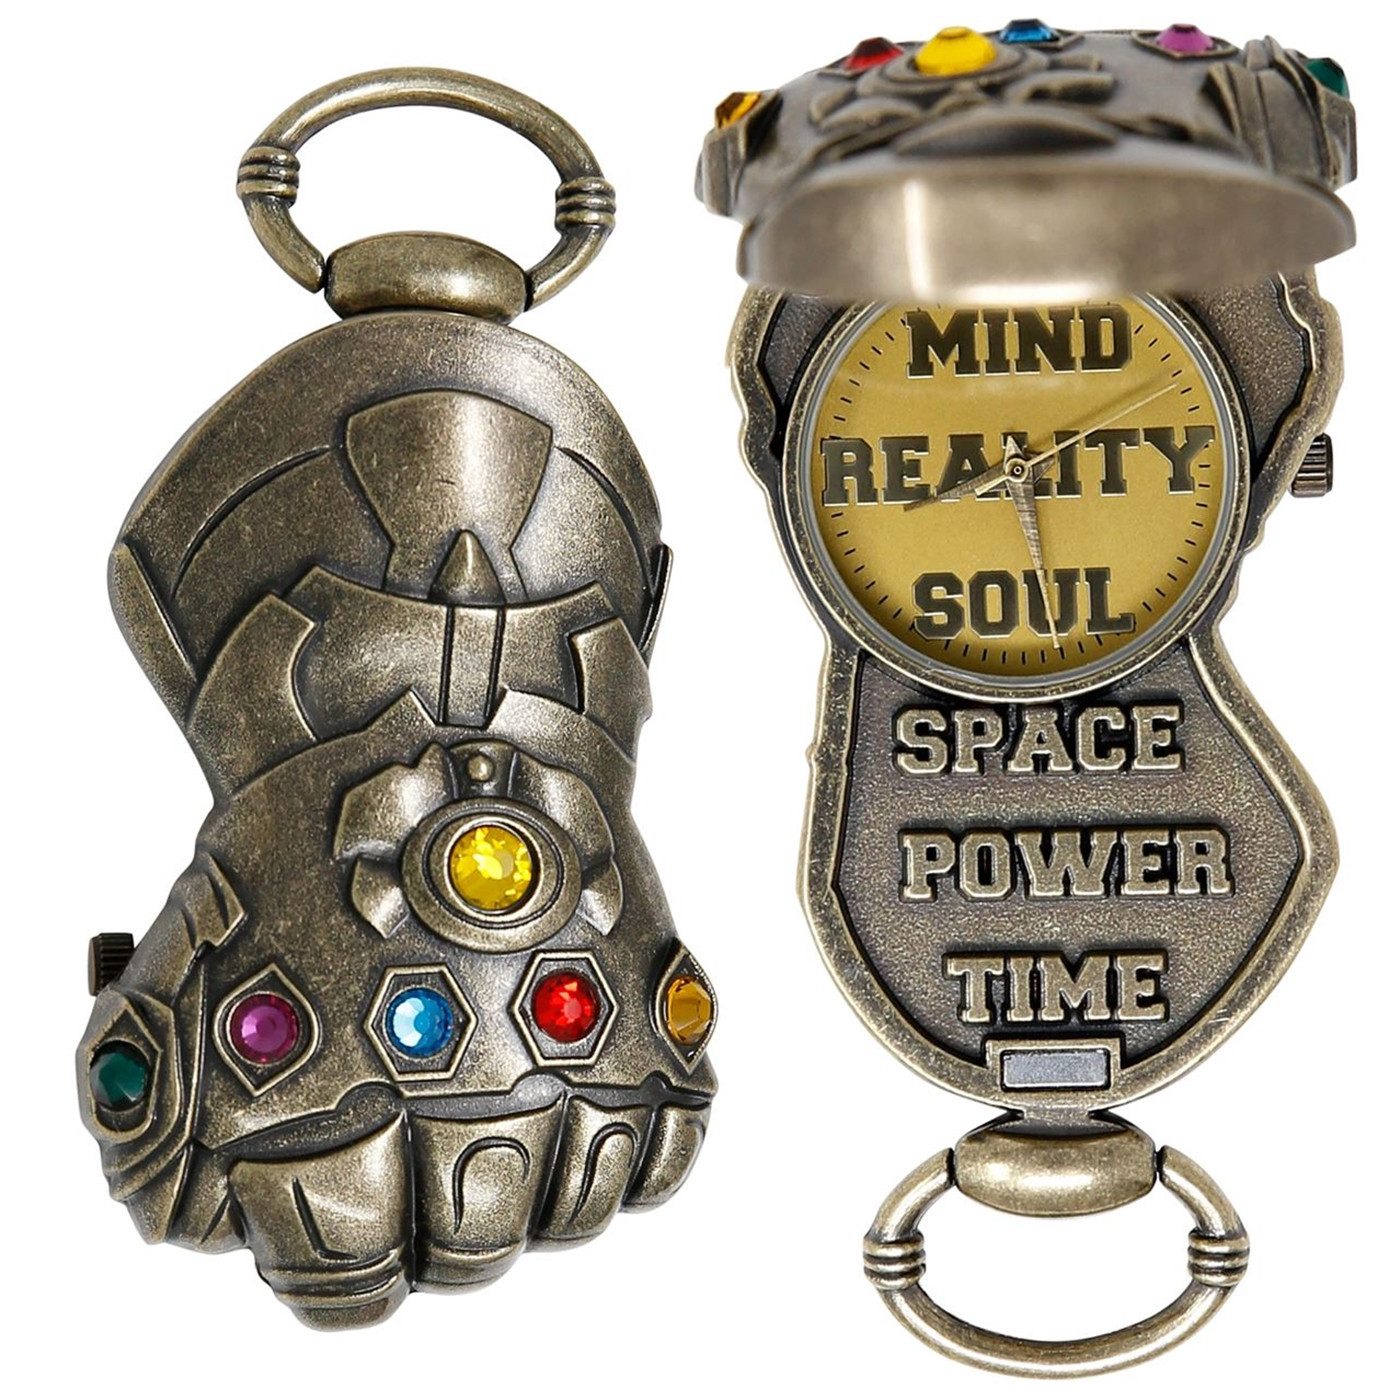 Avengers Endgame Movie Thanos Gauntlet Pocket Watch